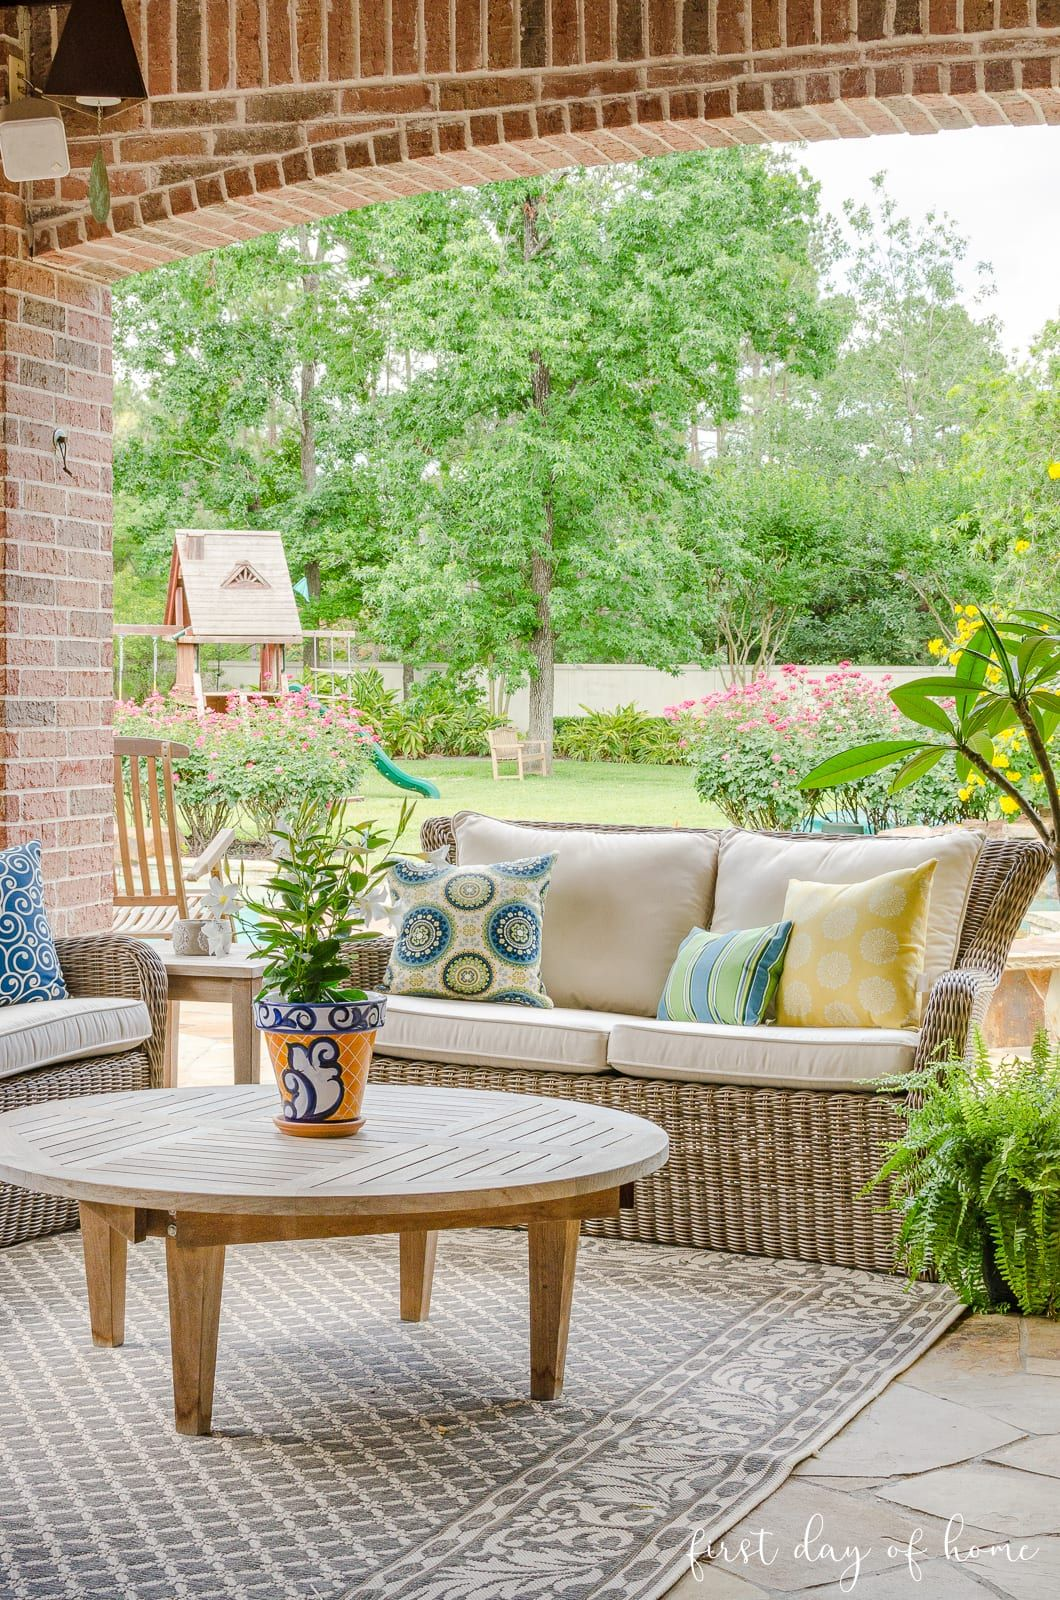 The Best Affordable Ideas For Patio Decor Summer Tour In 2021 Patio Outdoor Living Patio Patio Decor